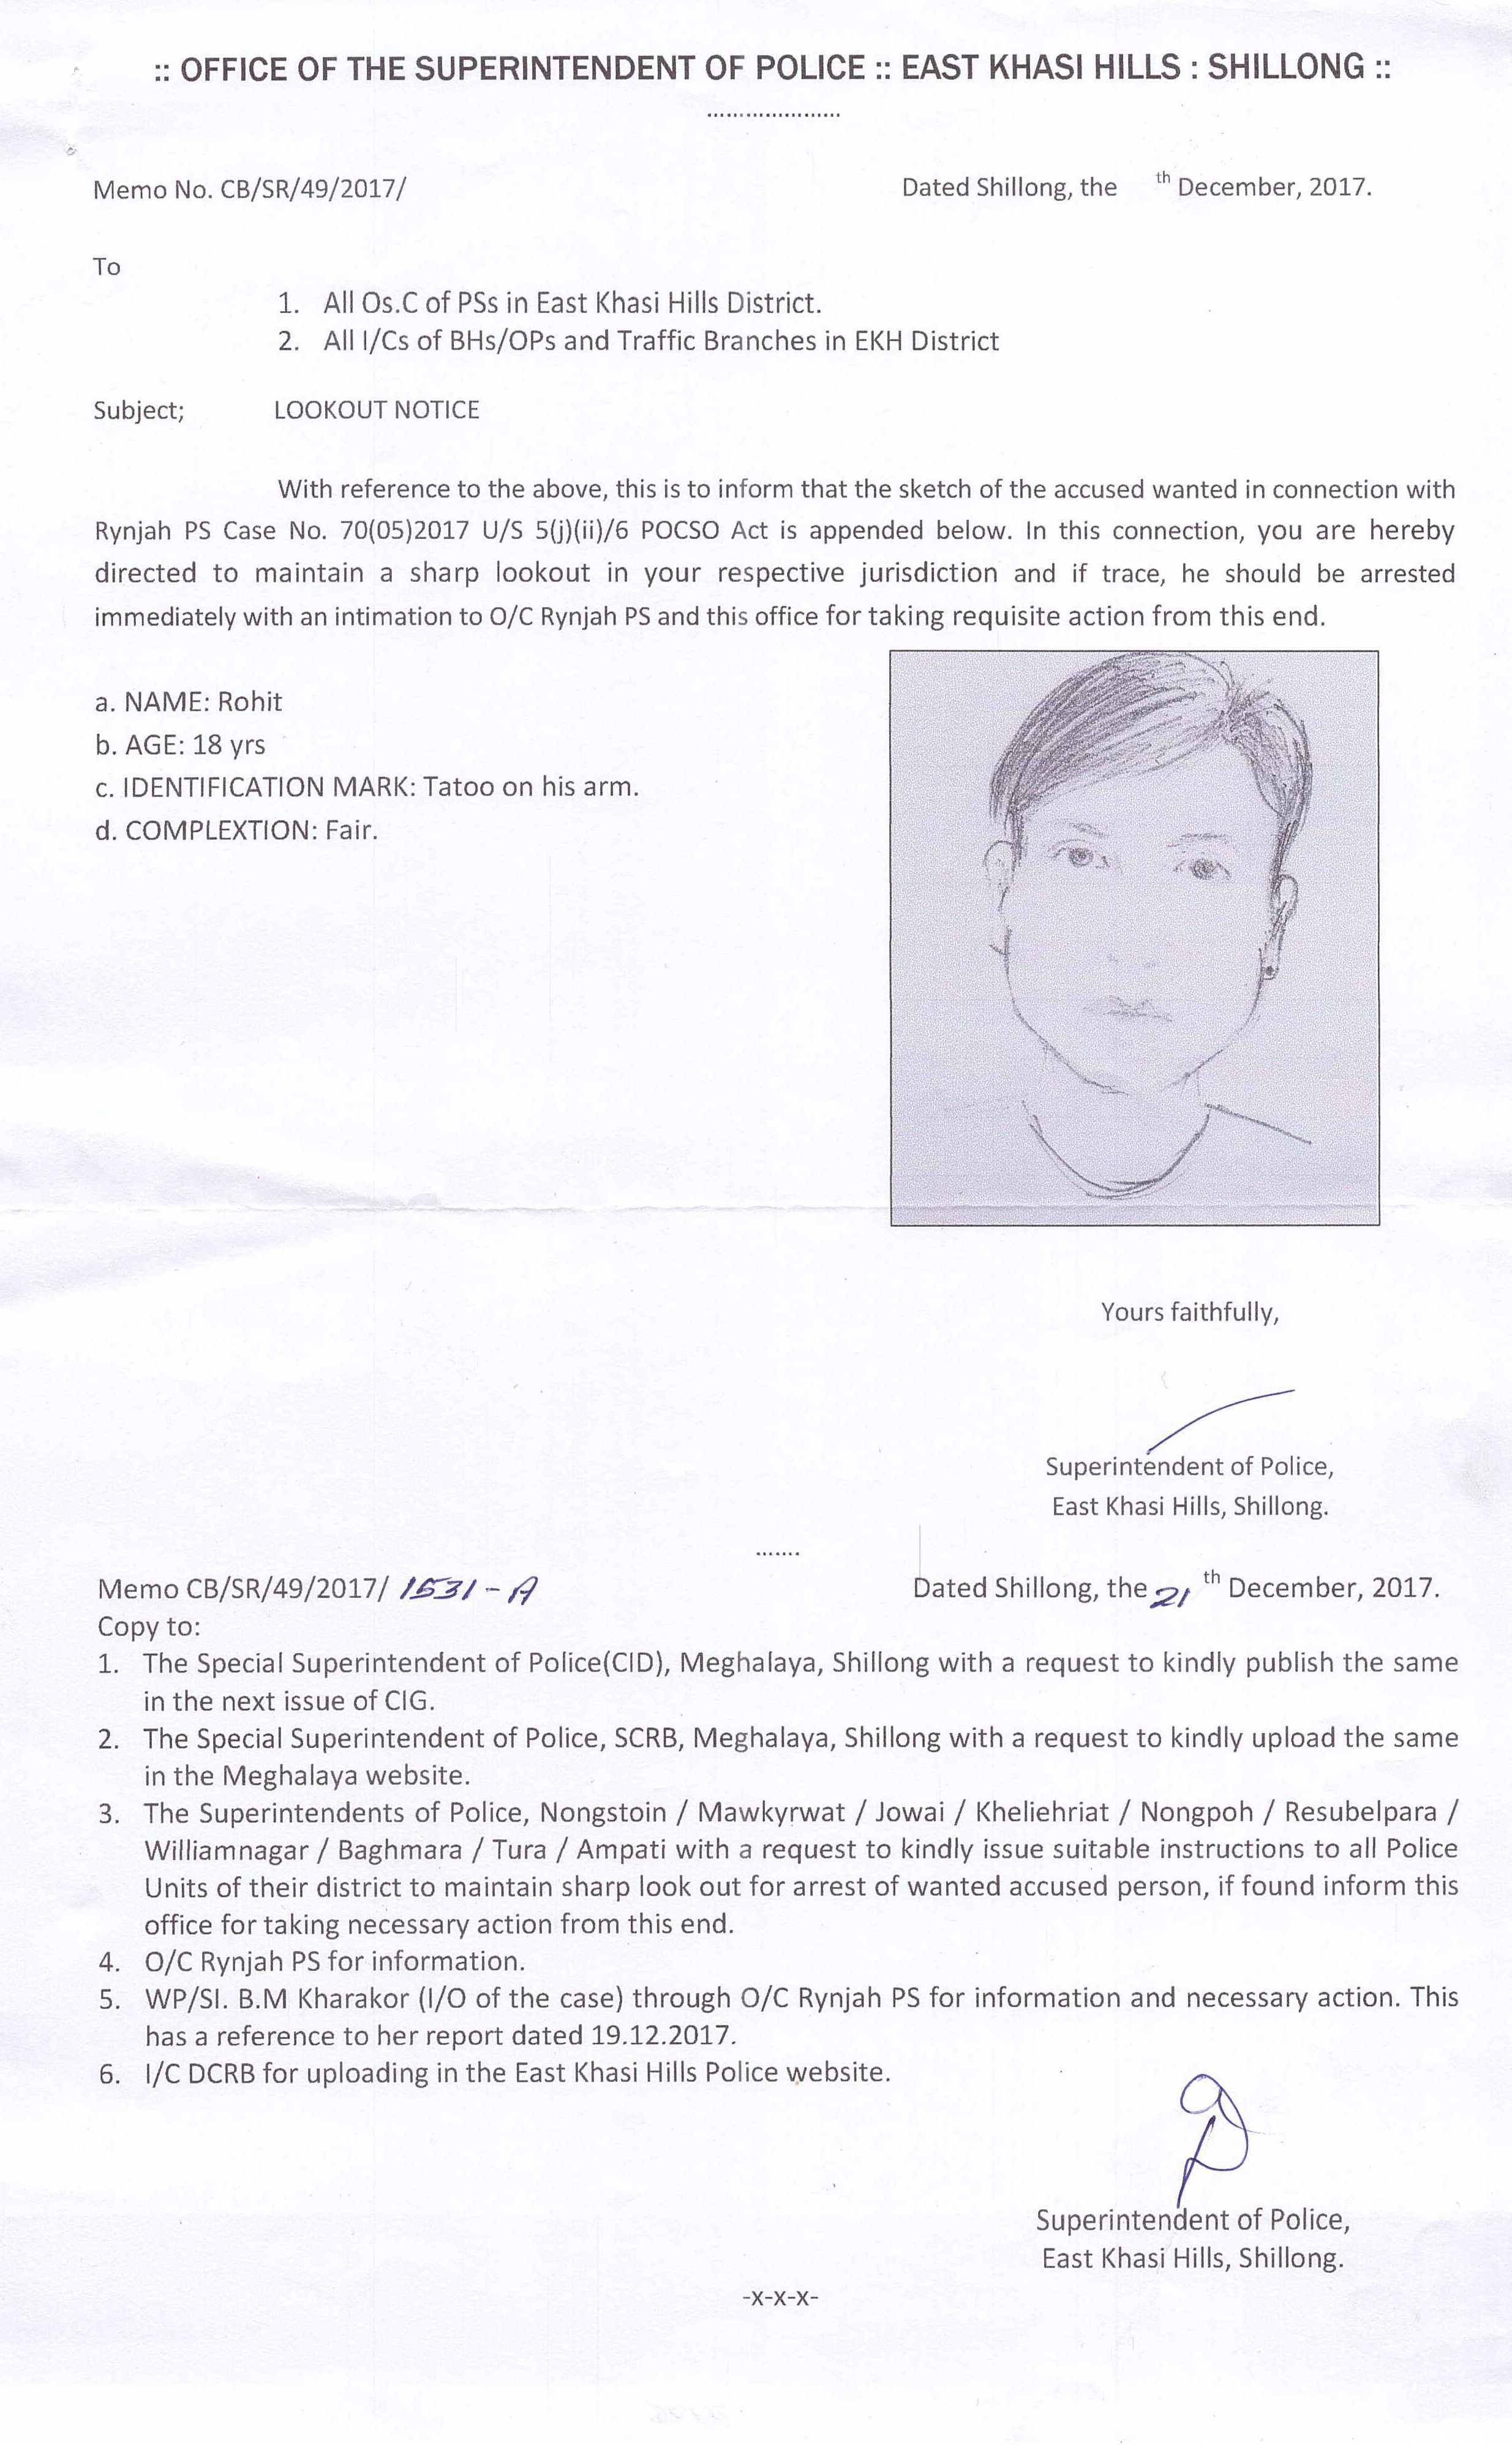 East khasi hills district police shillong meghalaya press release lookout notice 22122017 thecheapjerseys Gallery